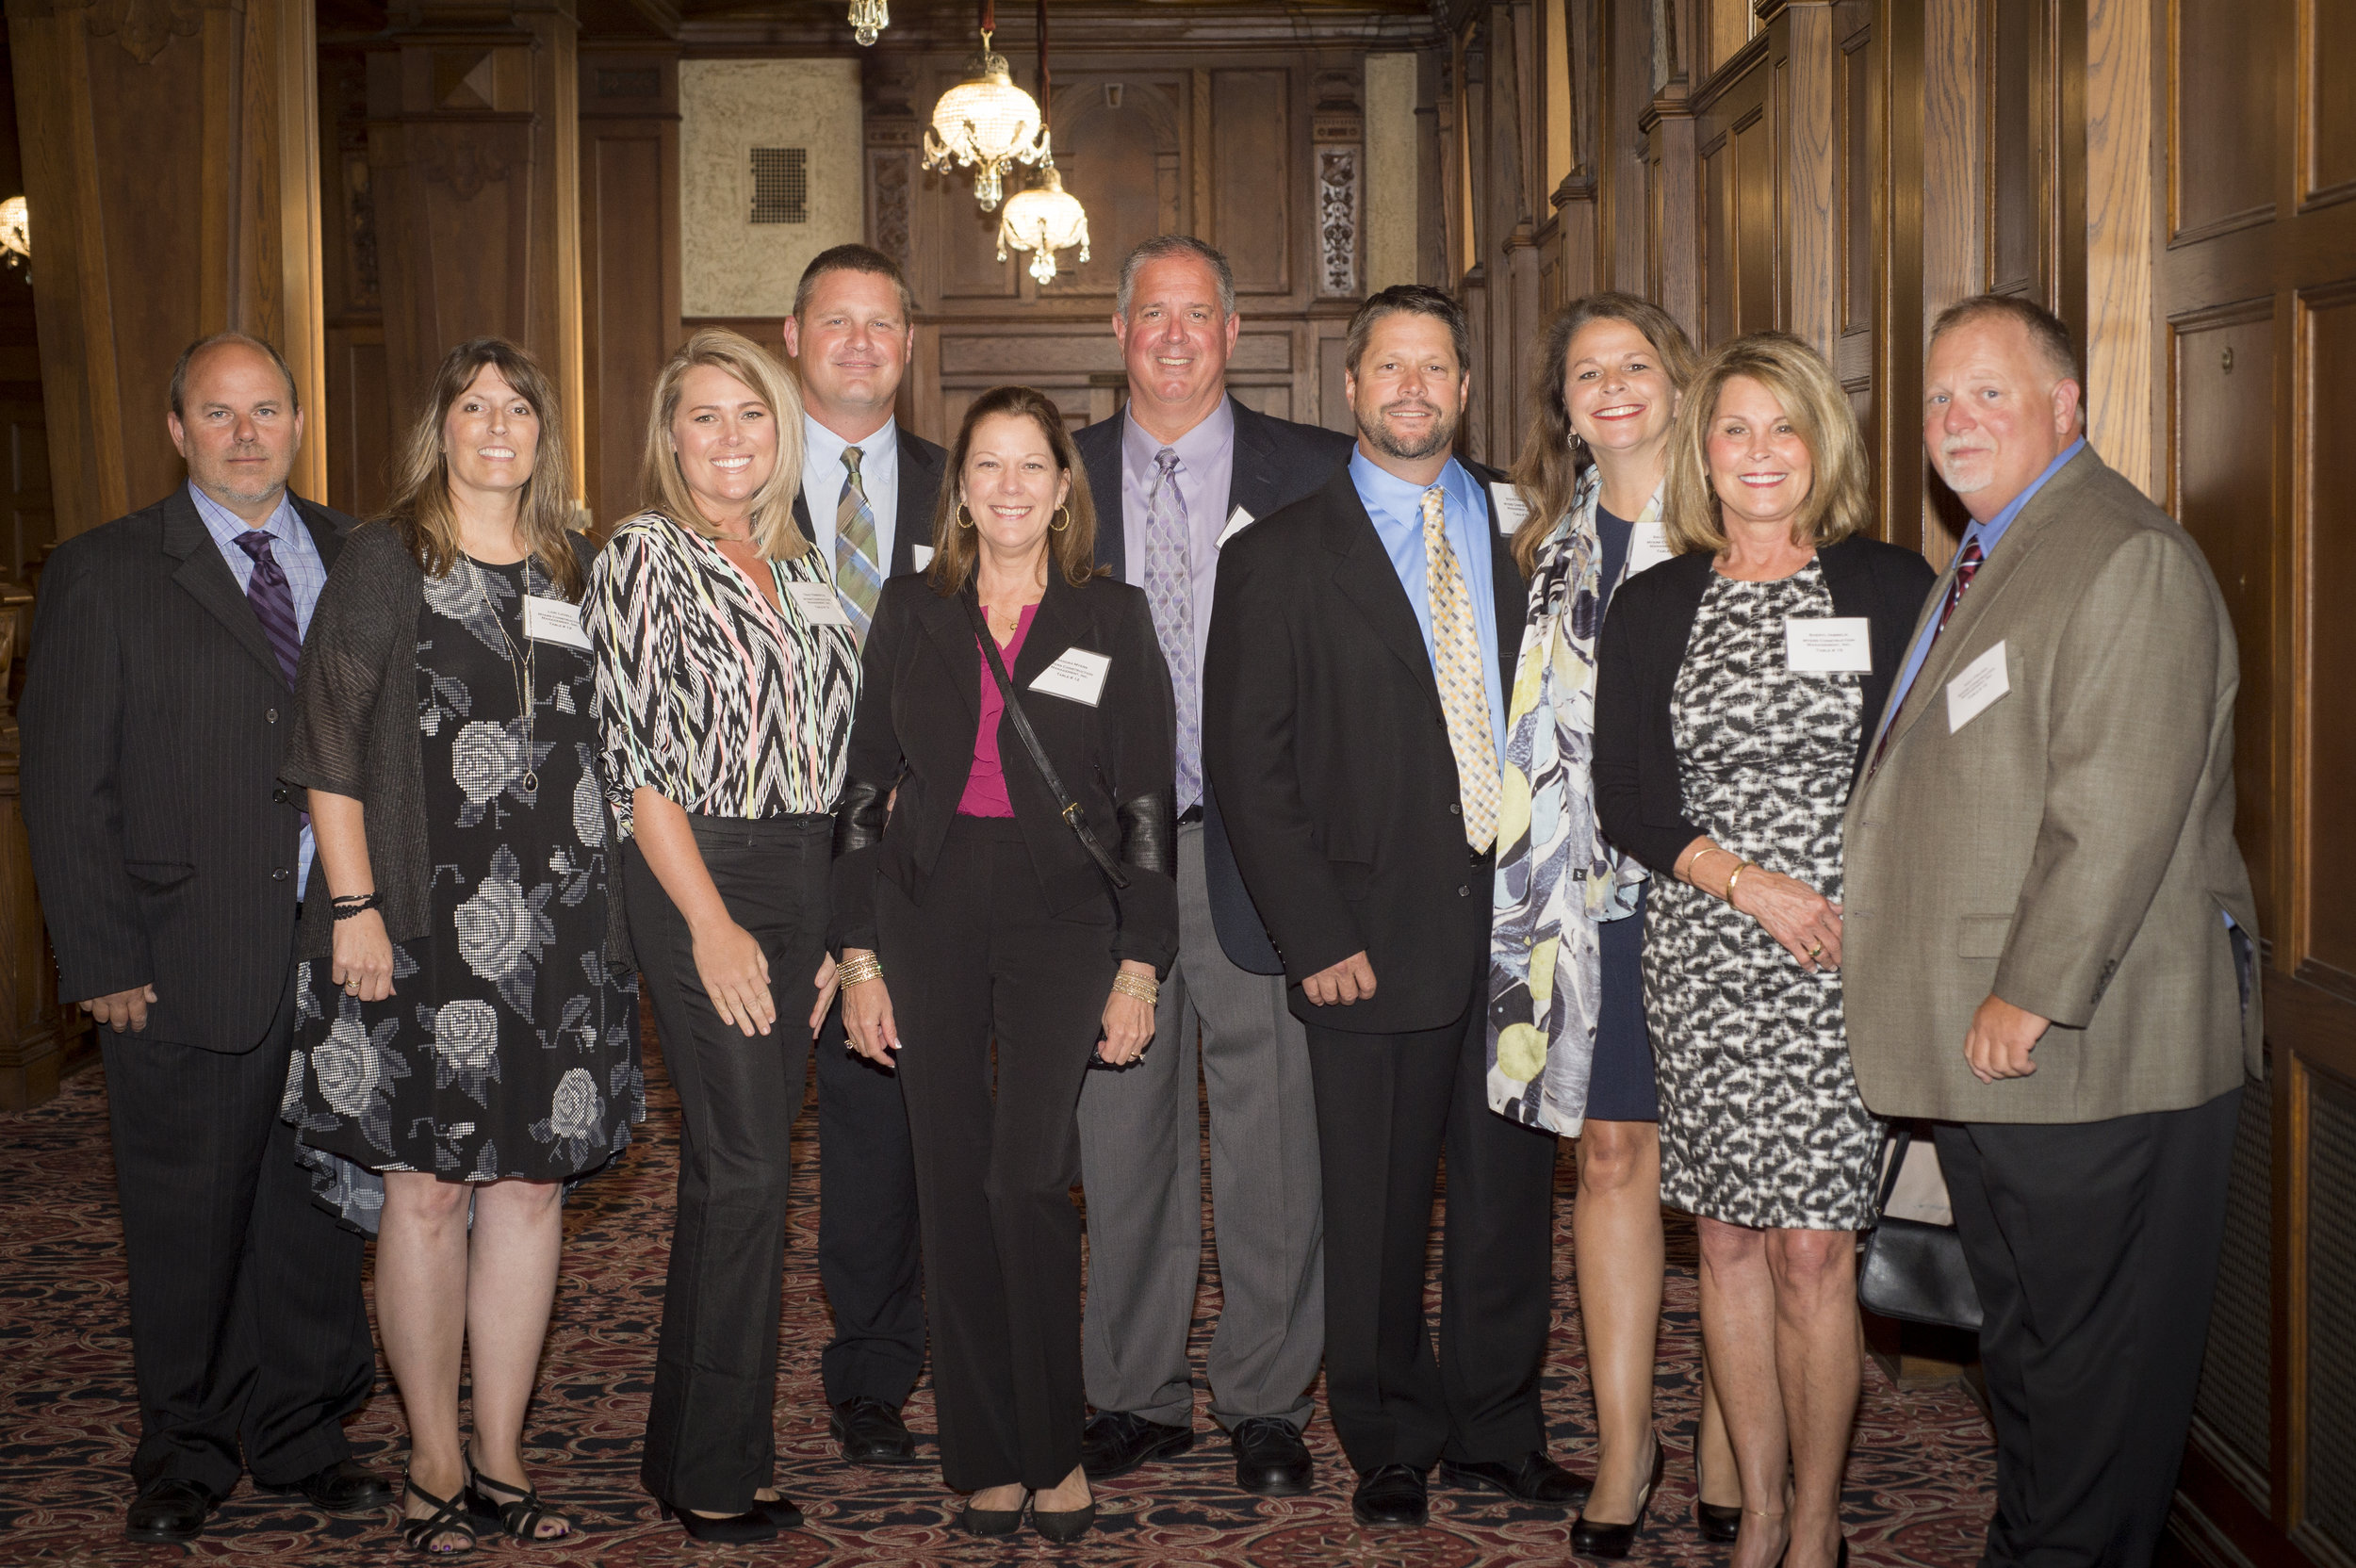 MCMI team members and their guests present to accept awards. Left to right: Jason Lovell, Lori Lovell, Tracy Emberton, Robert Emberton, Sandra Myers, Don Myers, Steve Ferguson, Sally Ferguson, Sheryl Hibbeln and Kent Fielden.